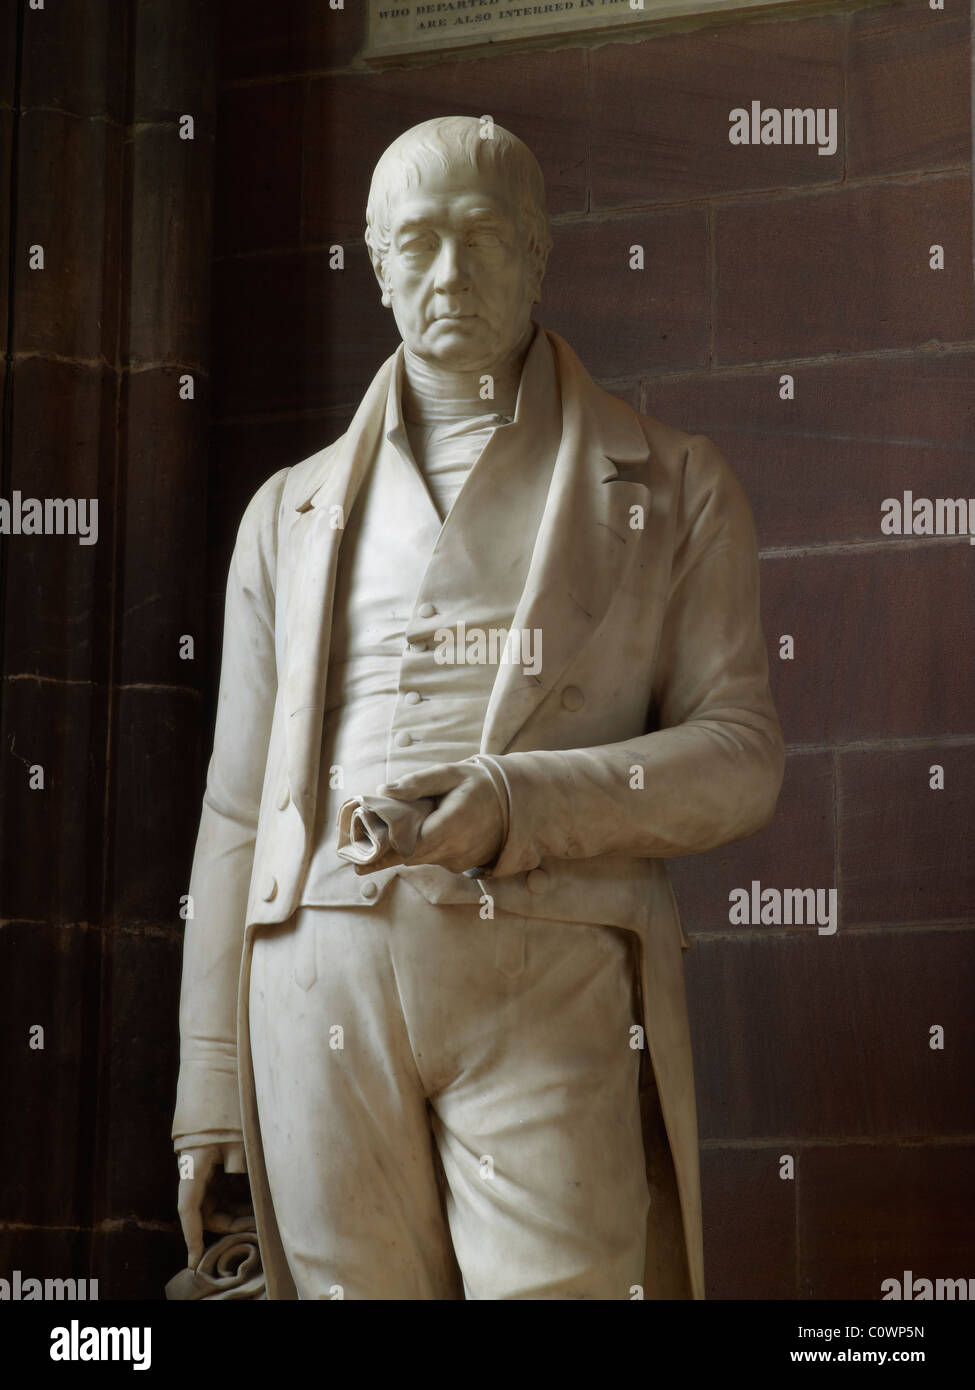 Manchester Cathedral Fleming statue - Stock Image